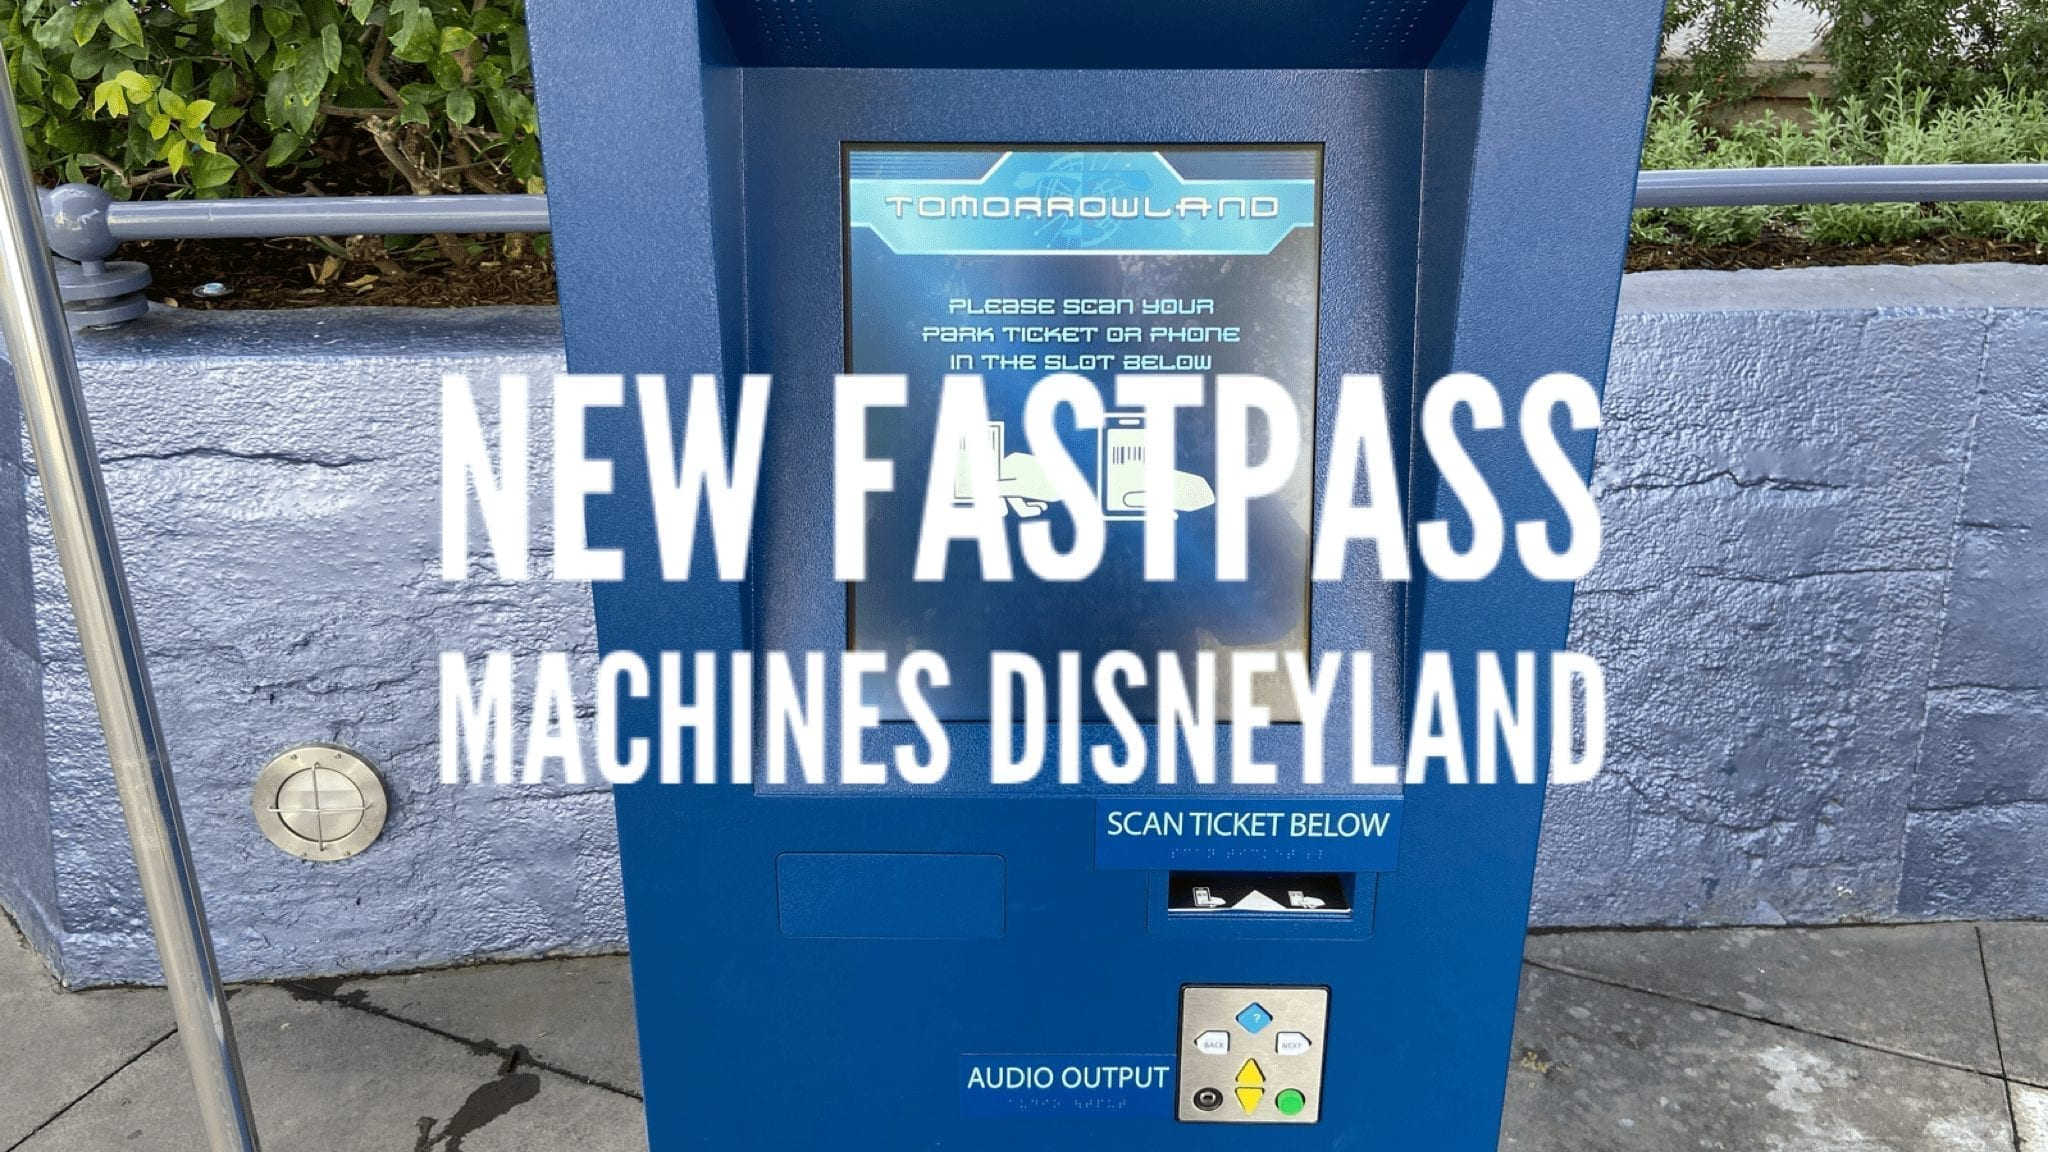 Tomorrowland Moves to New Fastpass Machines